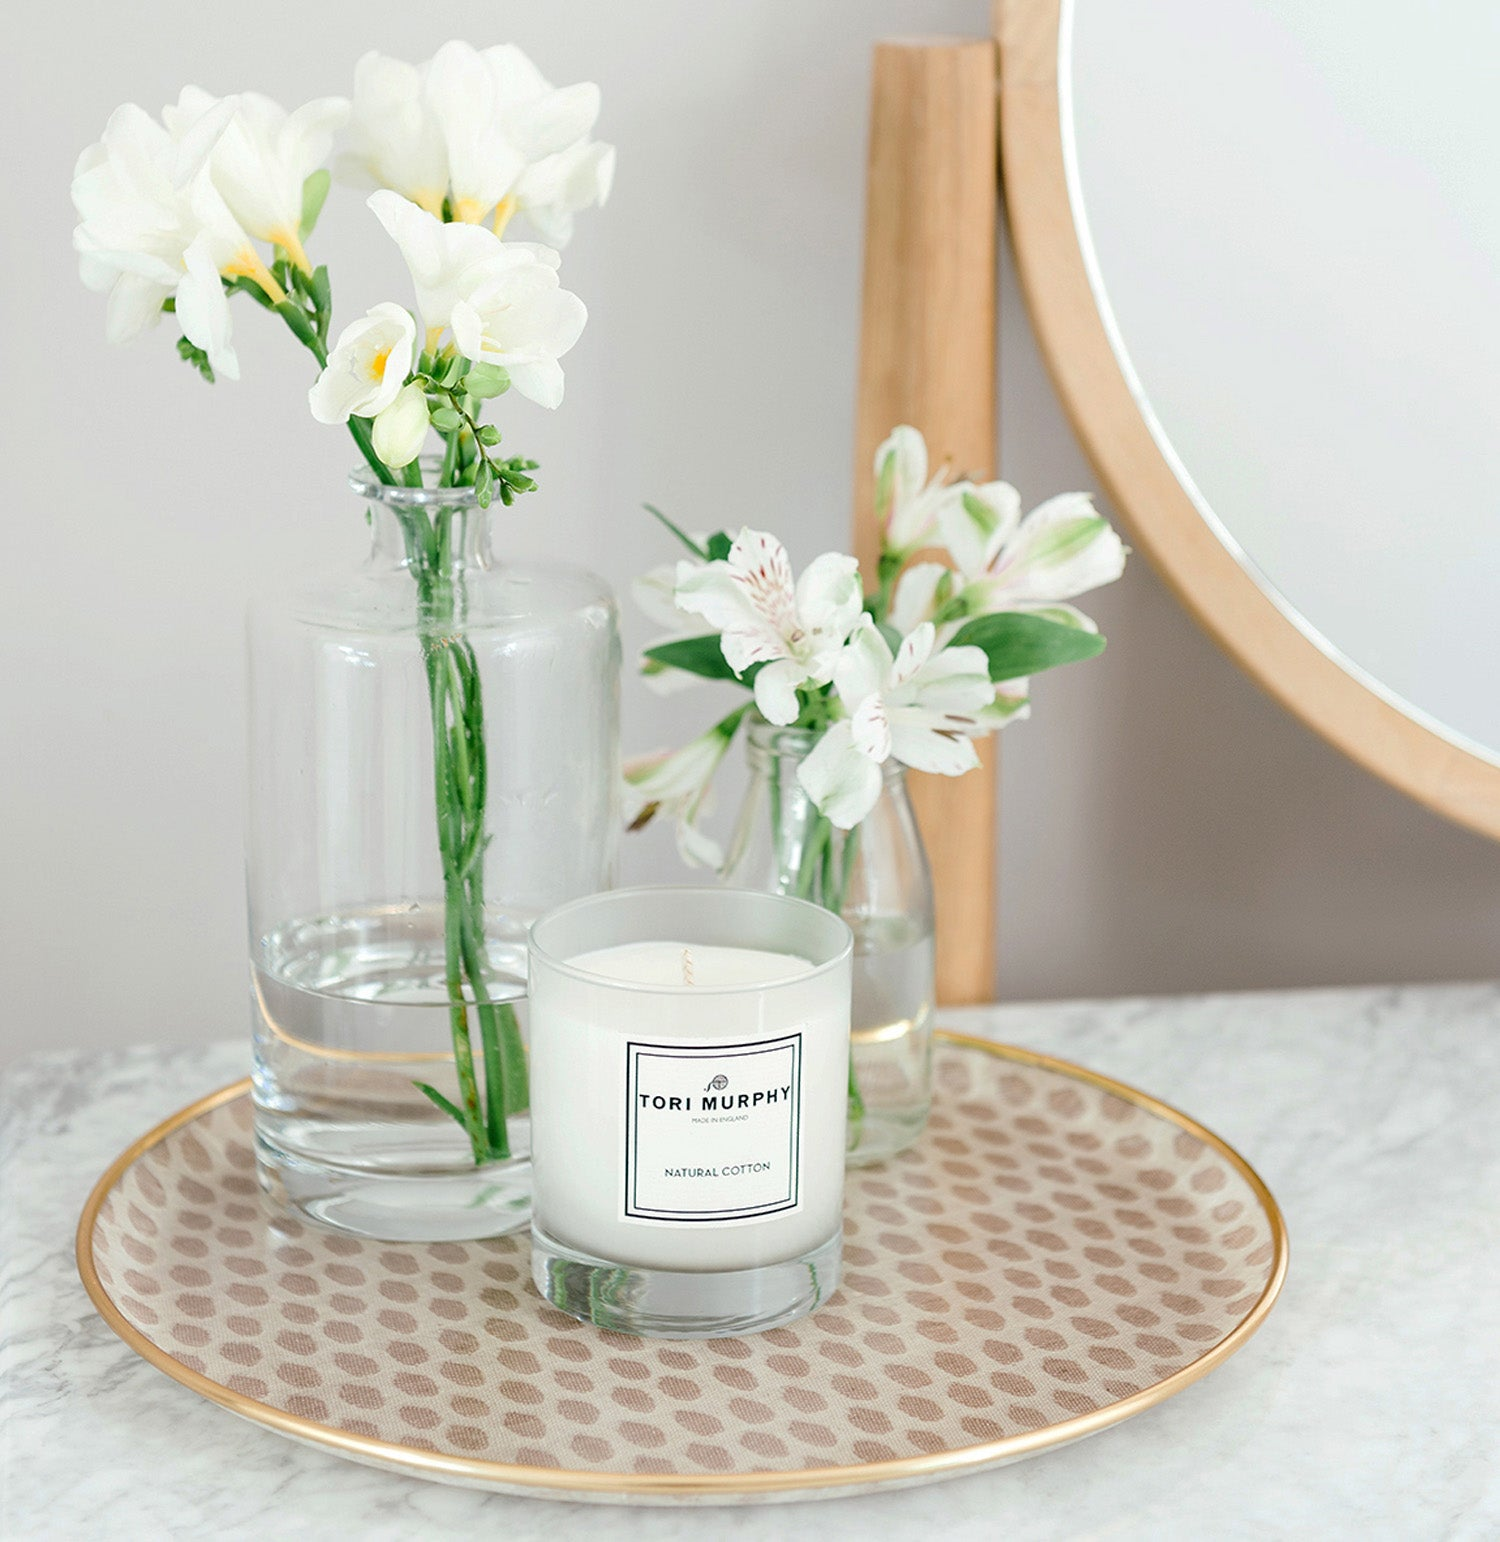 Natural Cotton Tori Murphy Candle